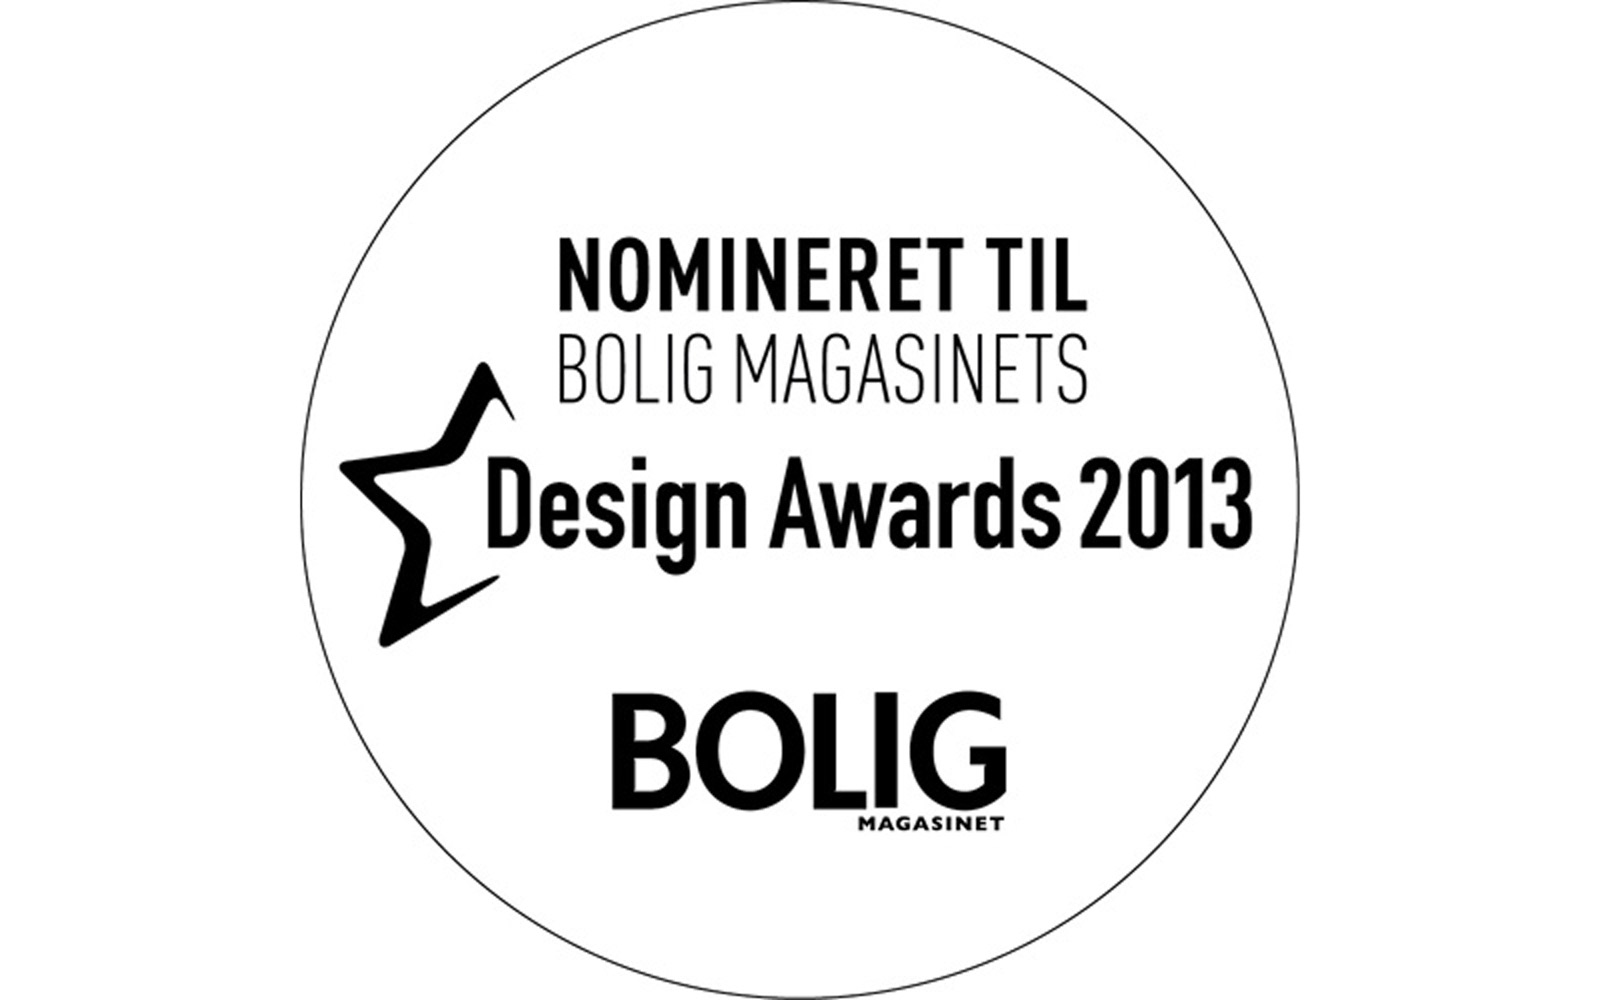 Bolig Magasinets Award nomination